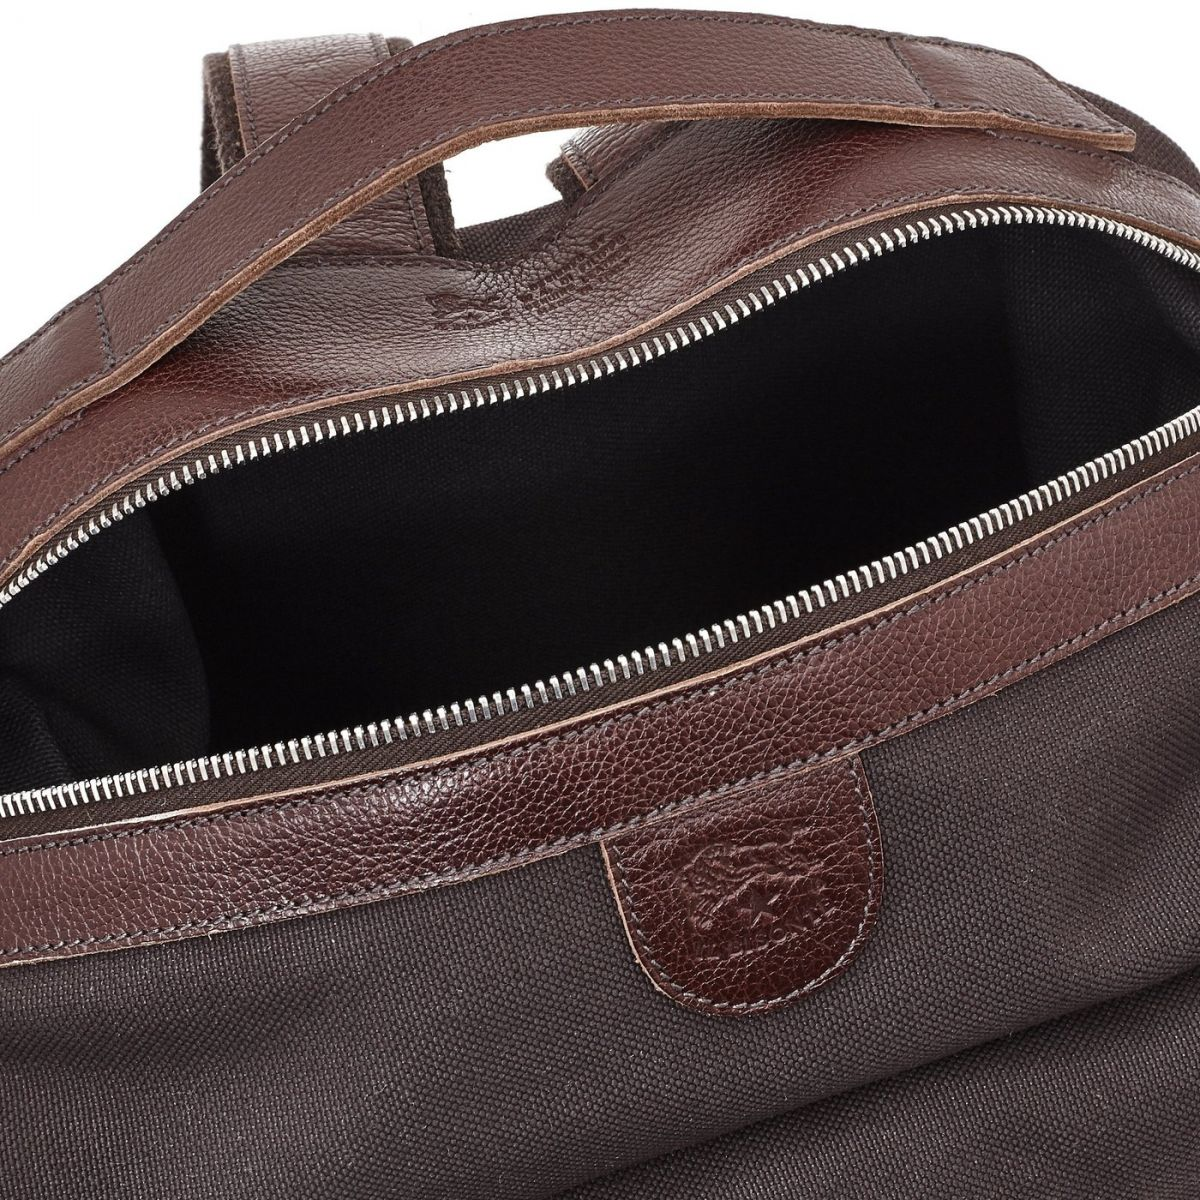 Men's Backpack  in Technical Fabric BBA033 color Brown | Details